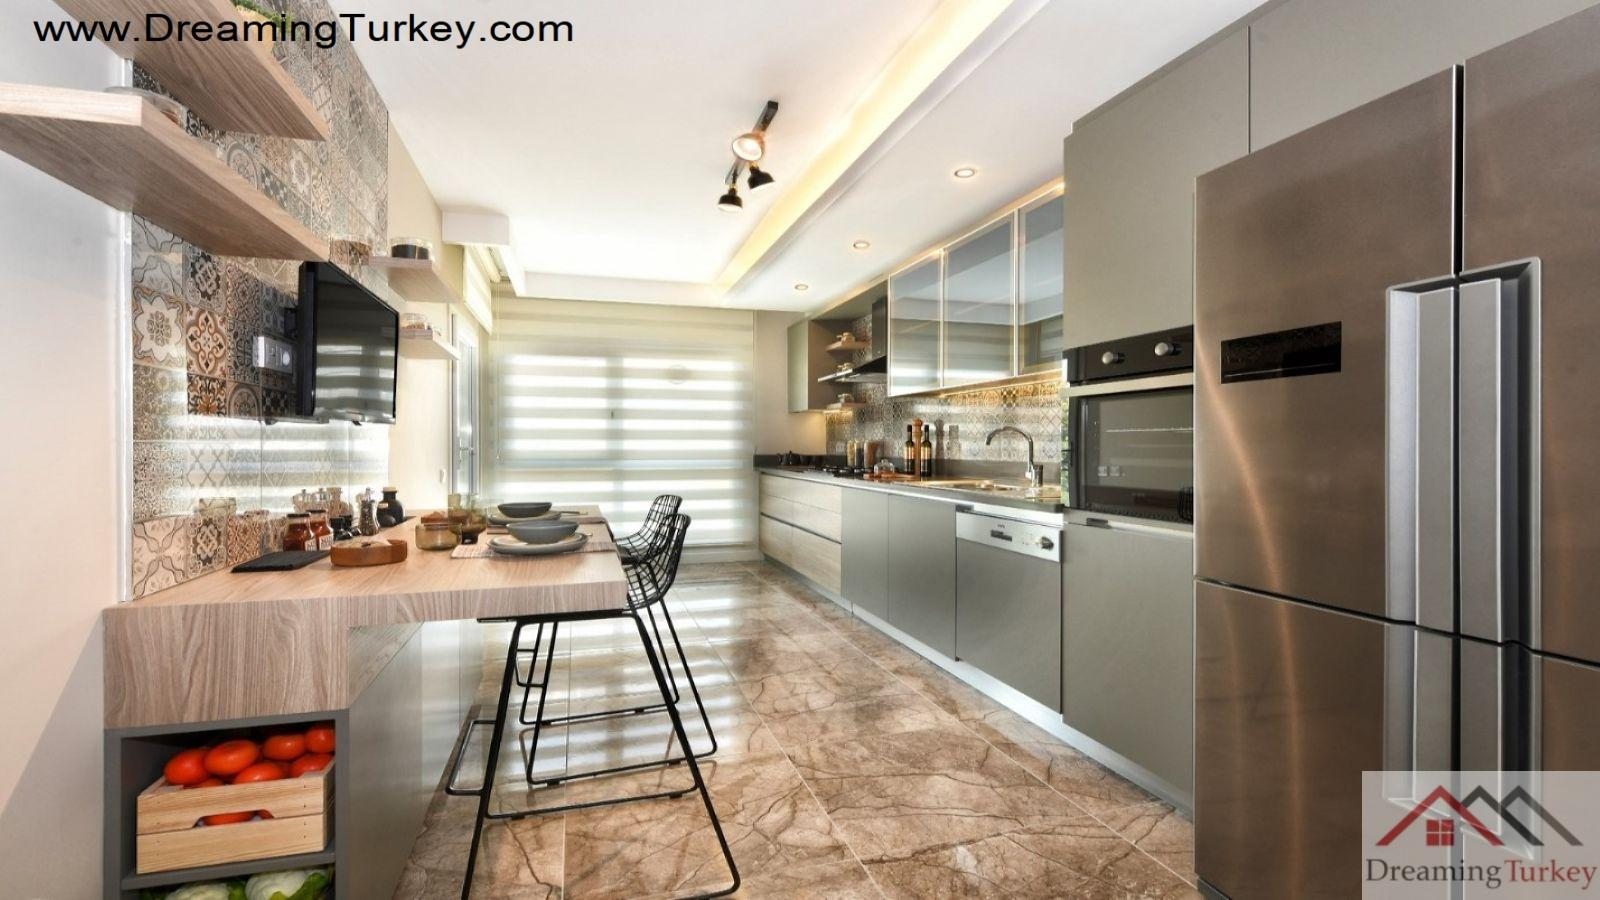 3-Bedroom Apartment with a Sea View in Istanbul